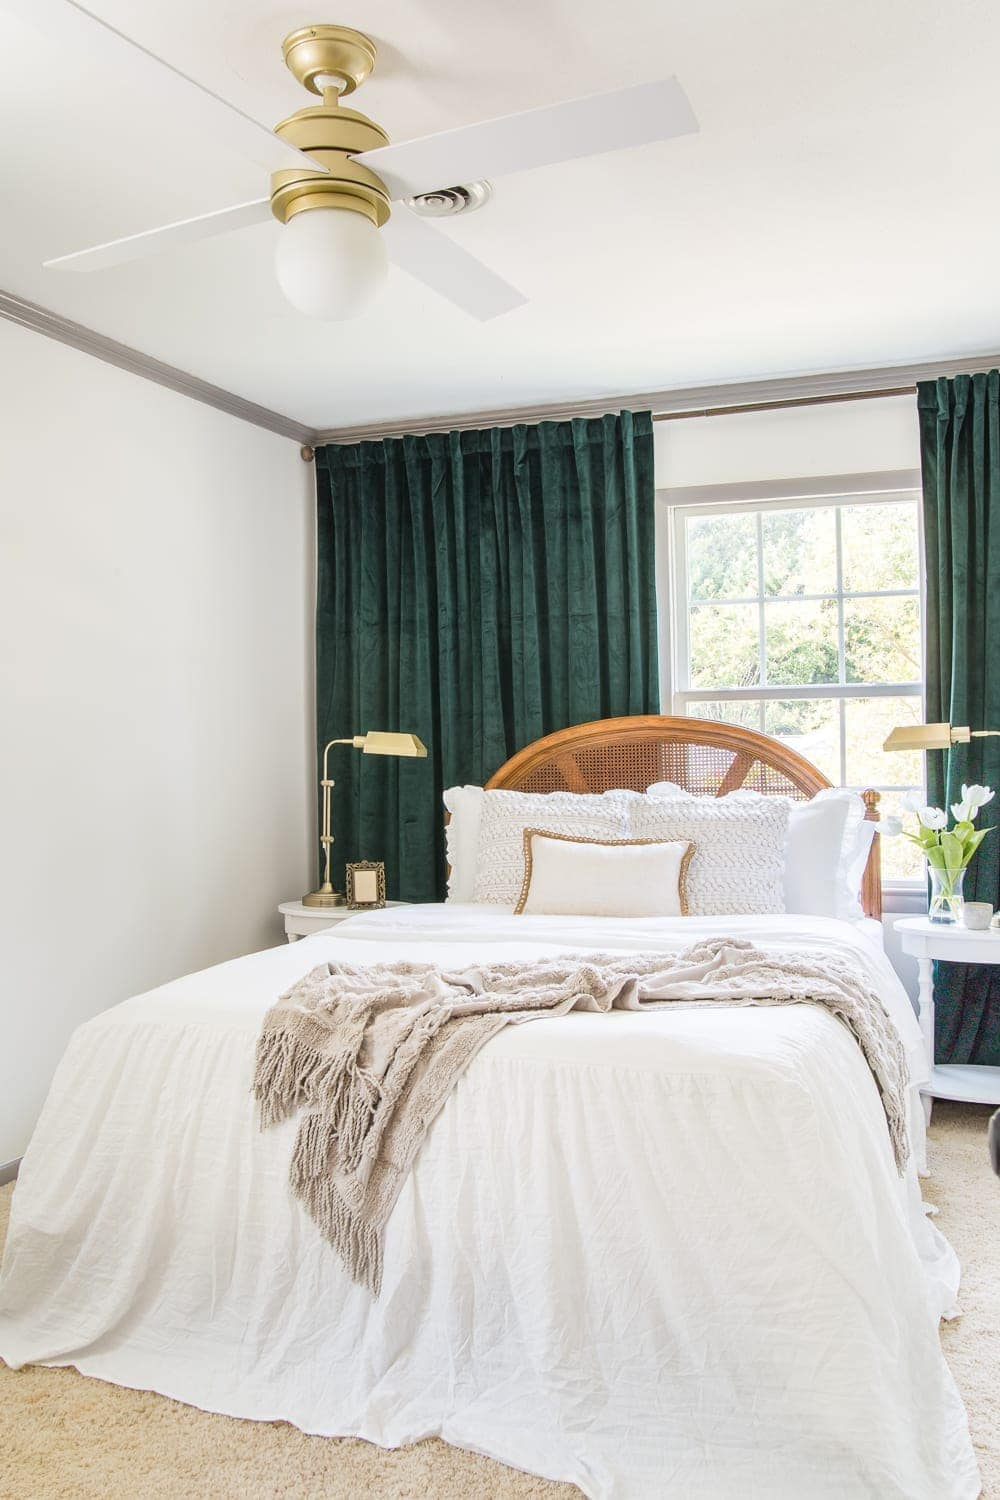 Guest bedroom makeover with linen skirted vintage style bedding and thrifted cane headboard